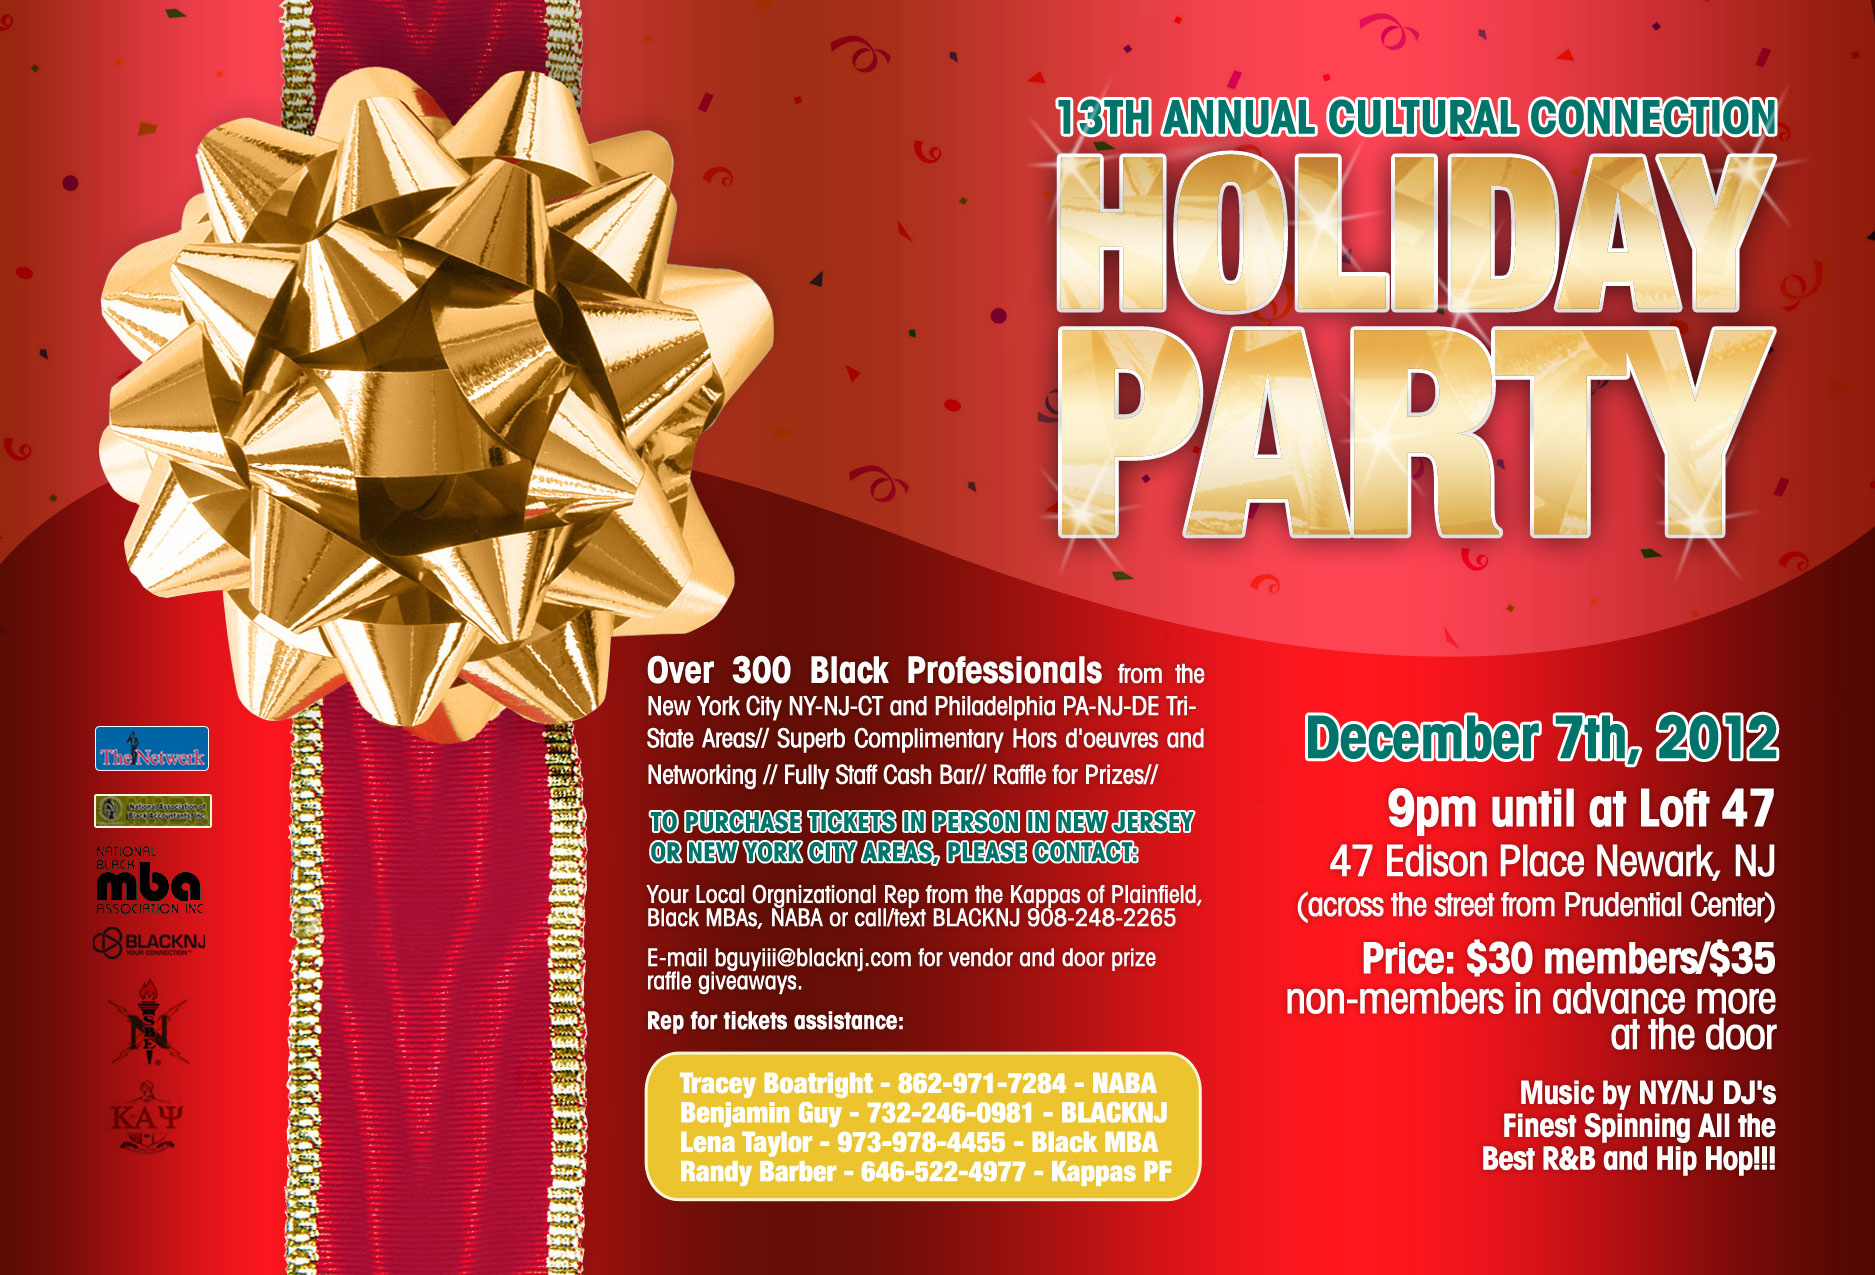 holiday event flyer jersey cover letter templates holiday event flyer jersey special event calendar county of union new jersey 13th annual cultural connection